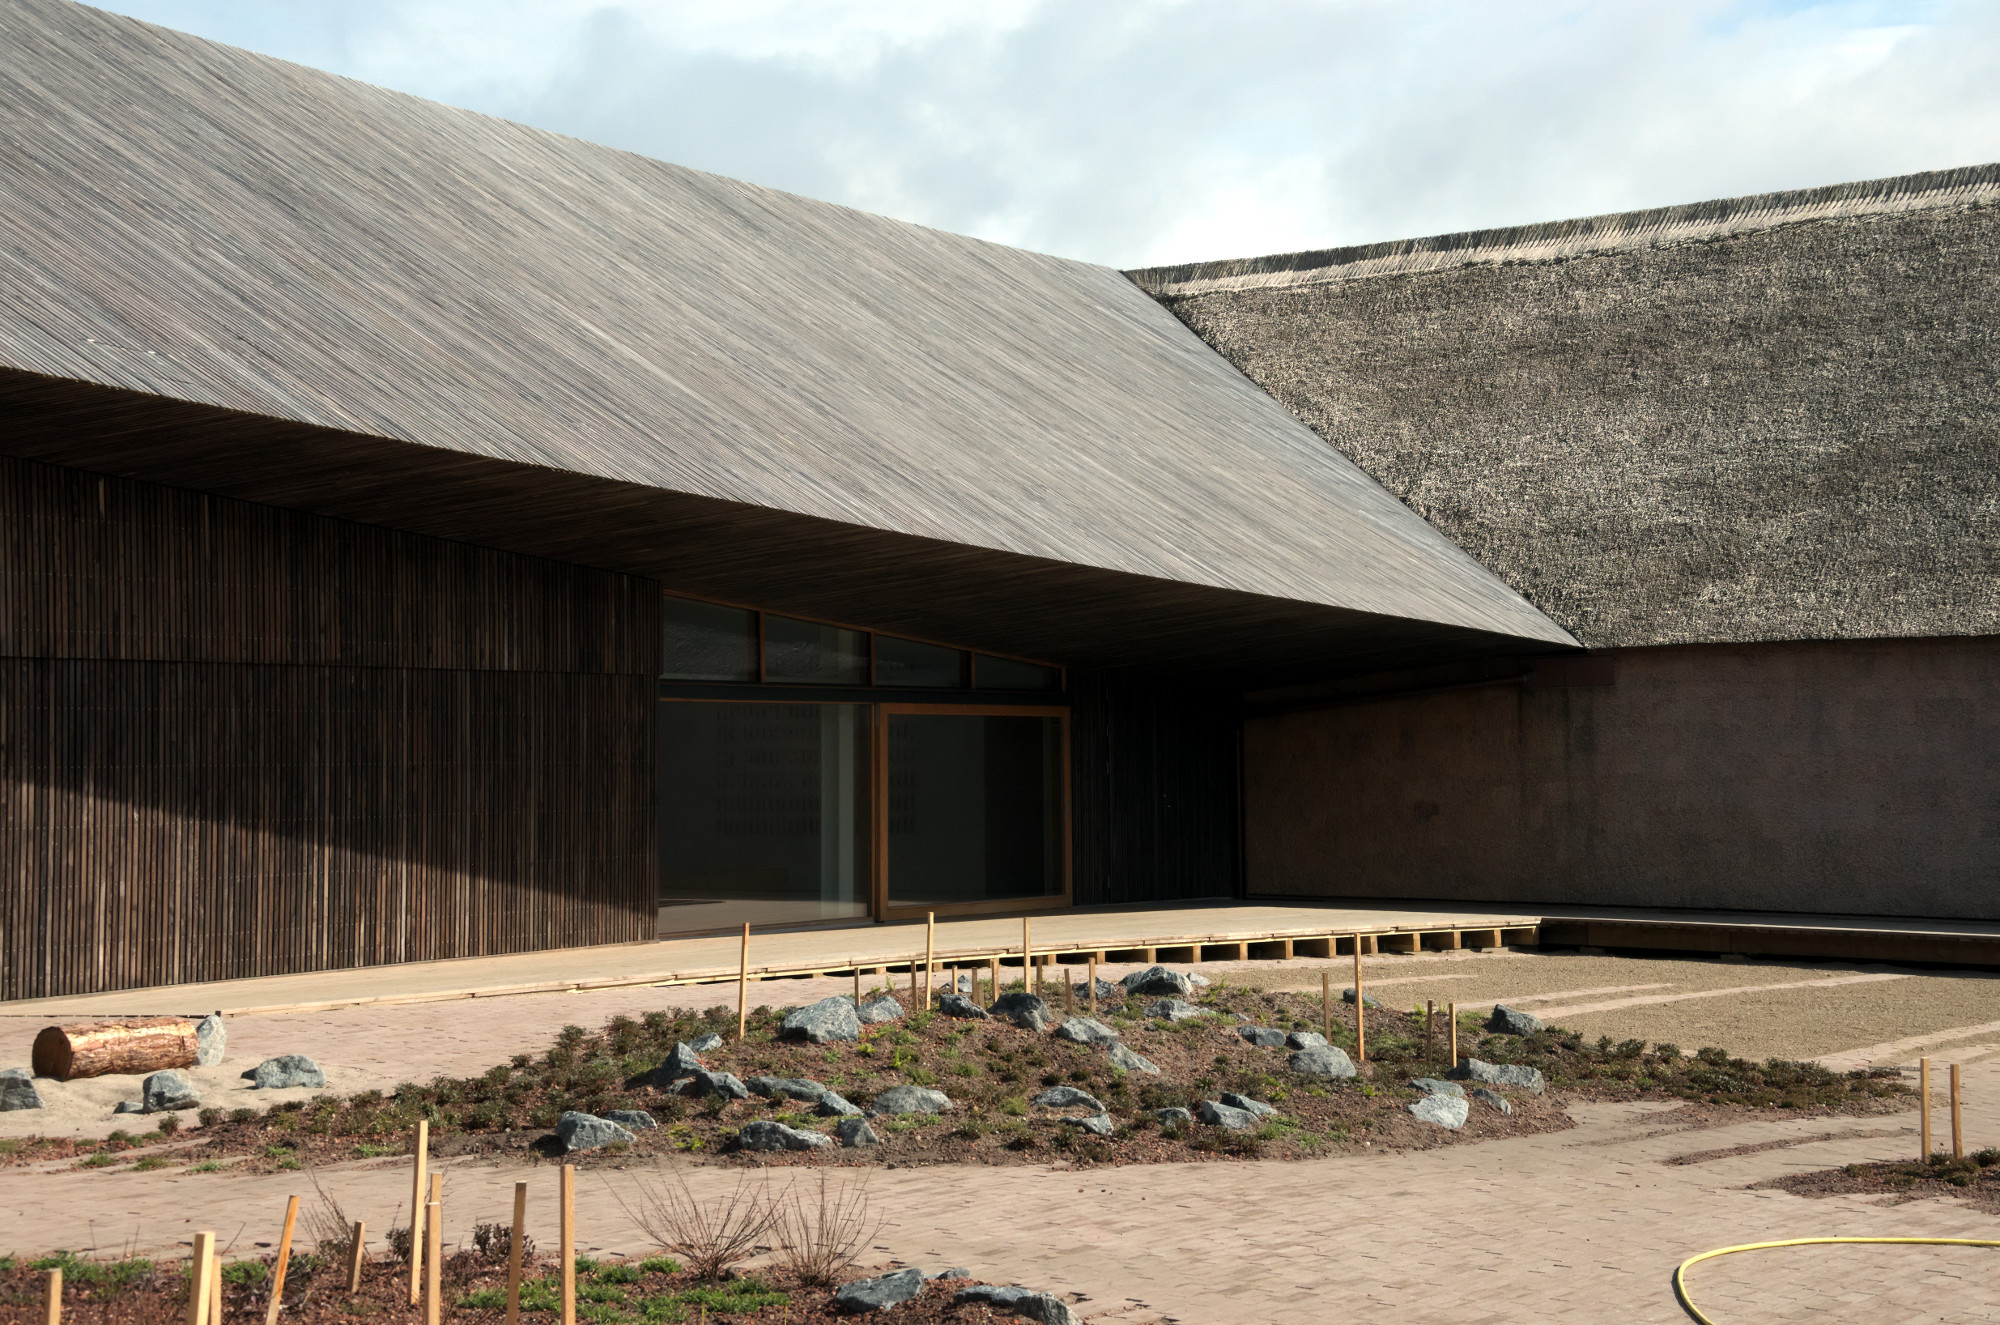 Wadden-Sea-Centre-by-Lundgaard-Tranberg